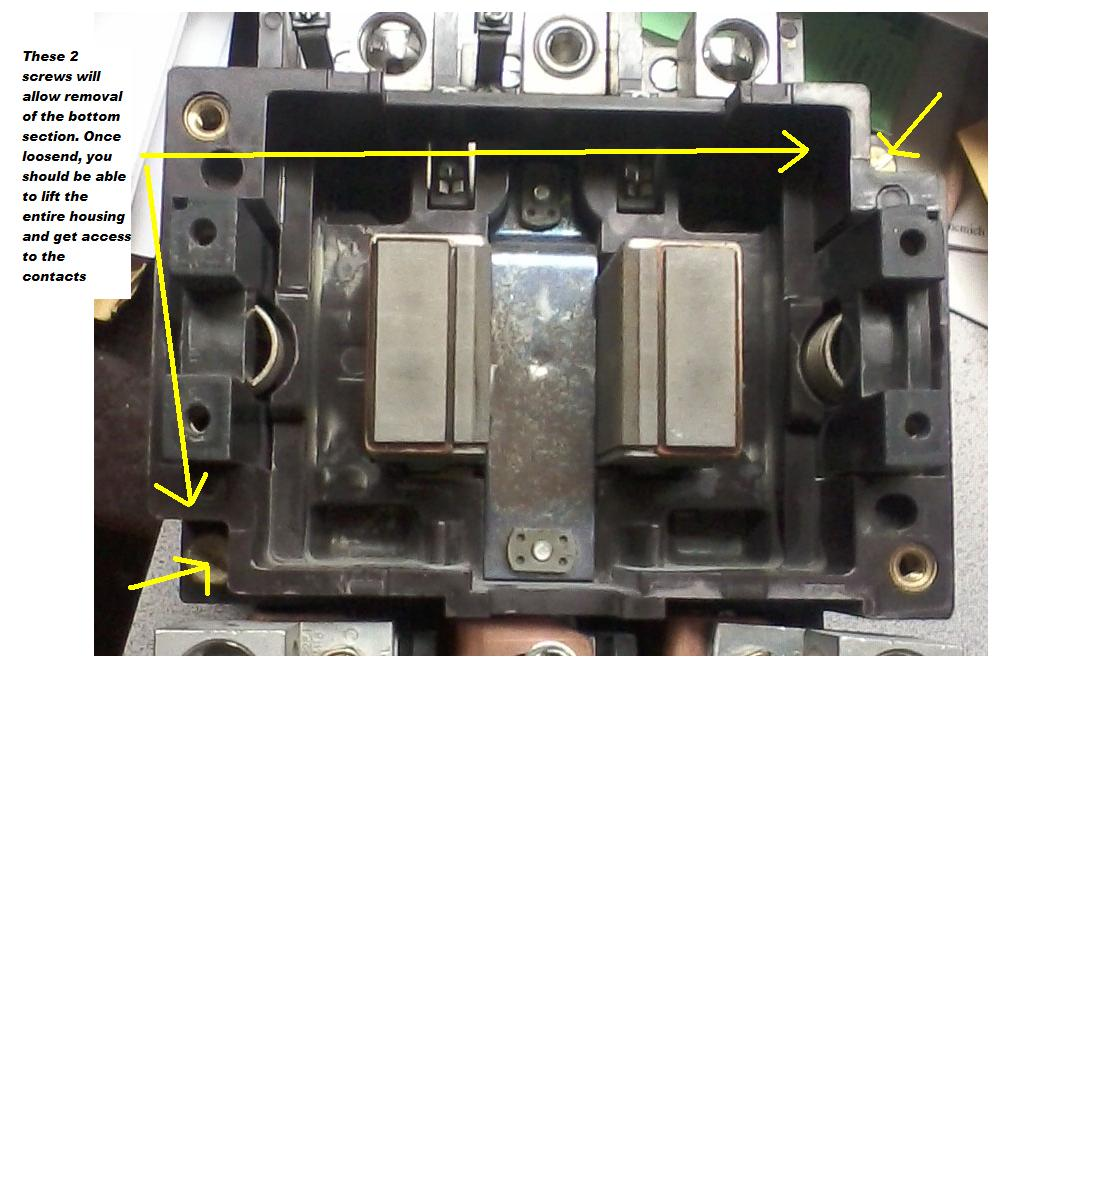 How Do I Access The Contactors In A Cutler Hammer Starter A10f 2 Dayton Electric Motor Wiring Diagram Am Db1 Graphic